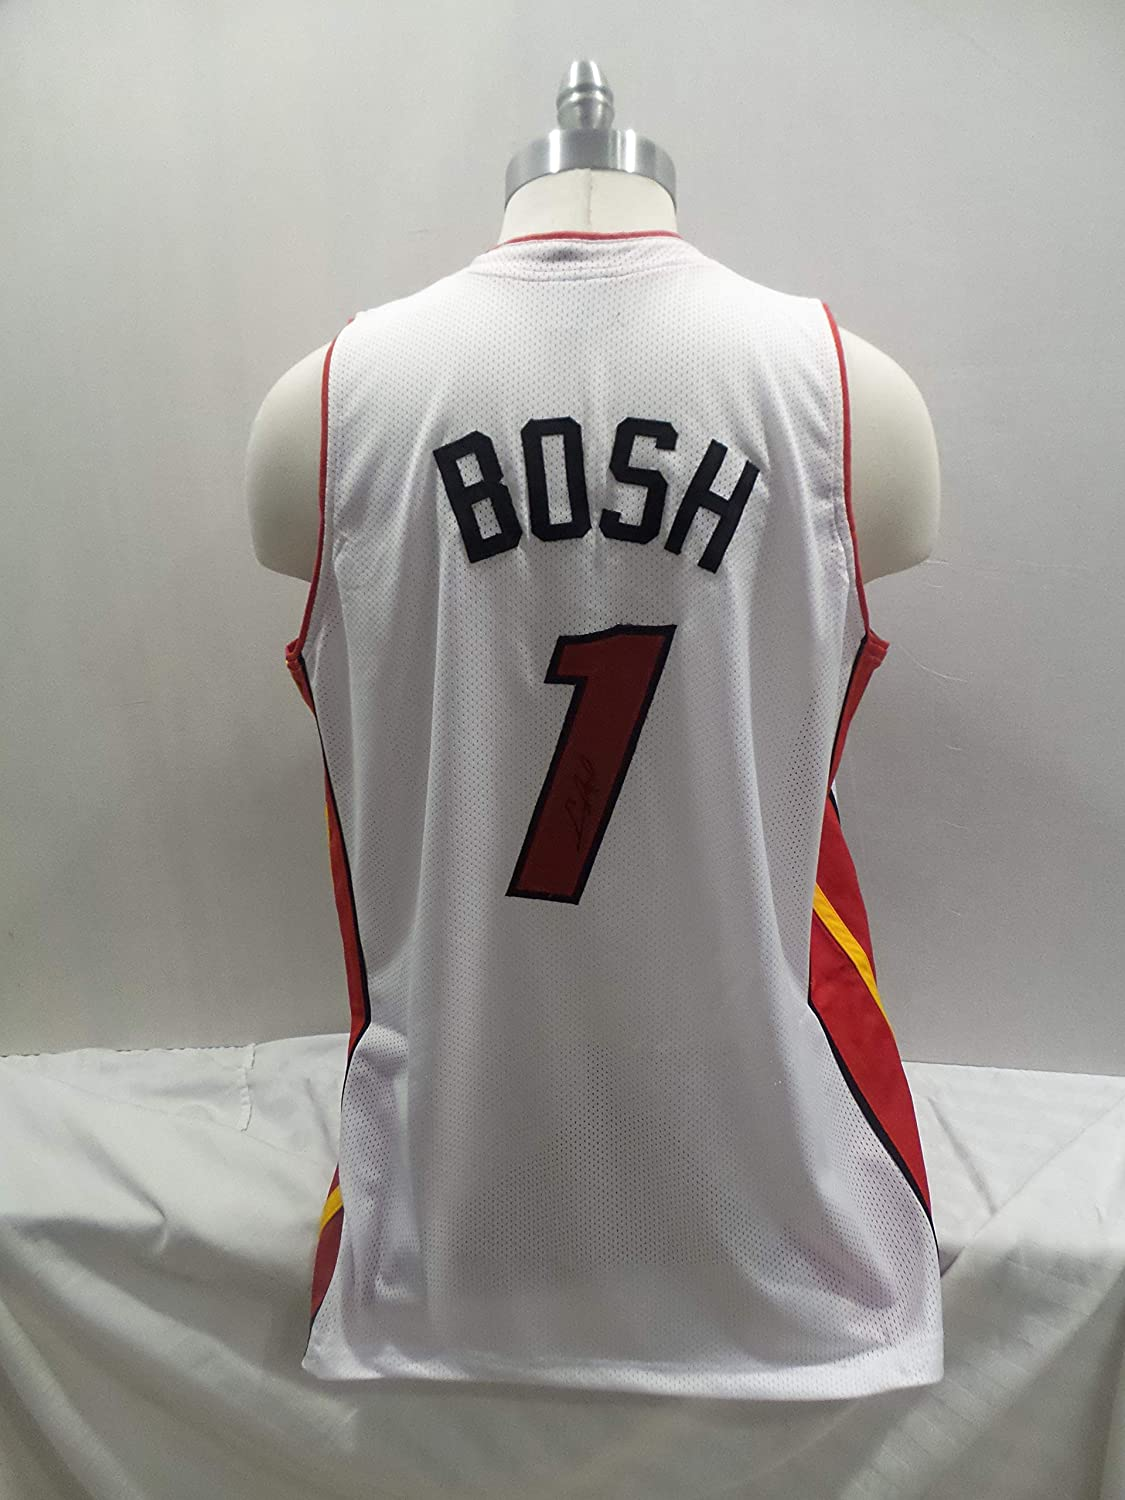 894db62e4b1 Chris Bosh Signed Miami Heat Autographed Novelty Custom Jersey at Amazon's  Sports Collectibles Store